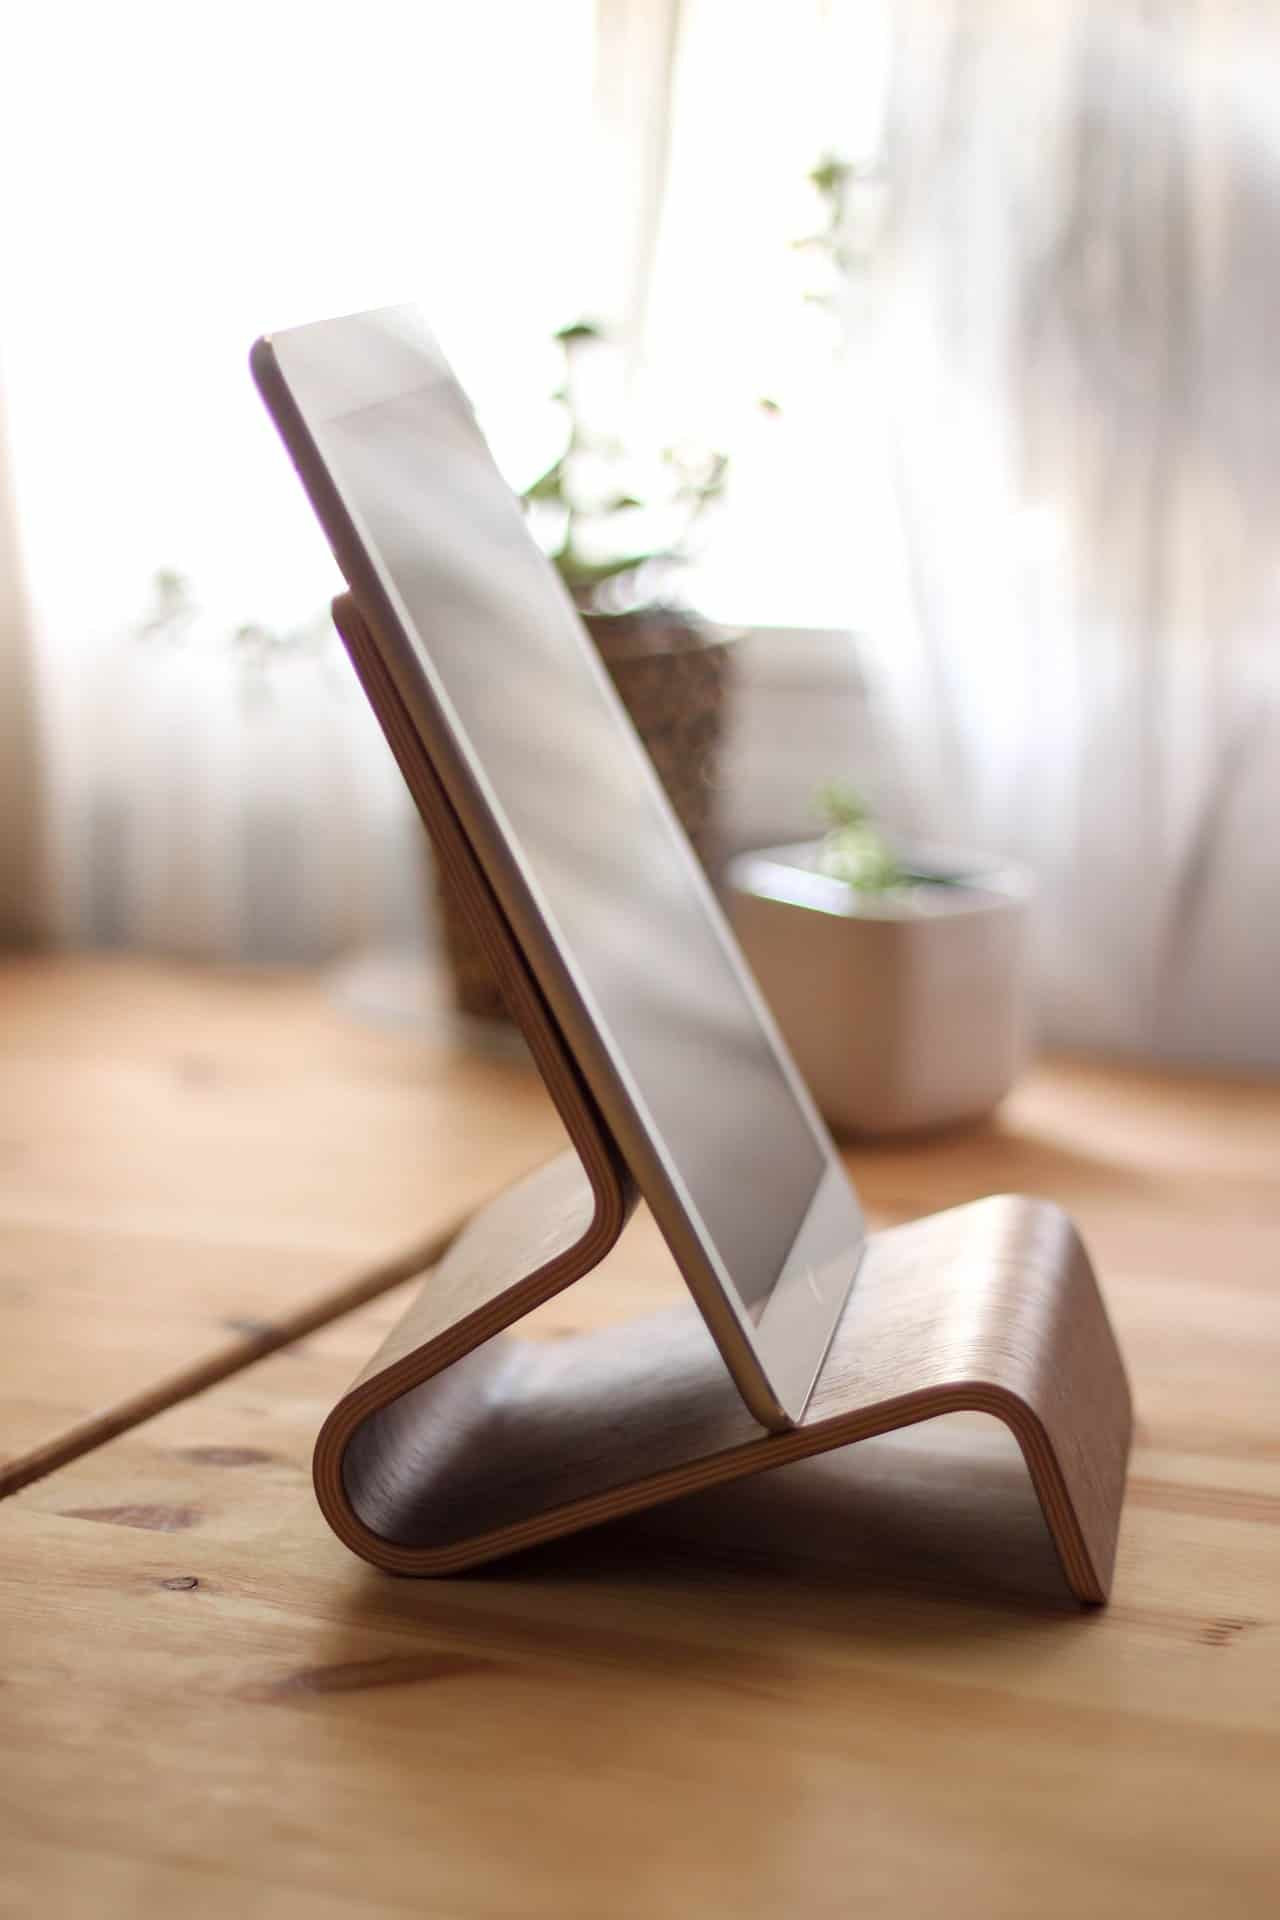 a wooden tablet holder